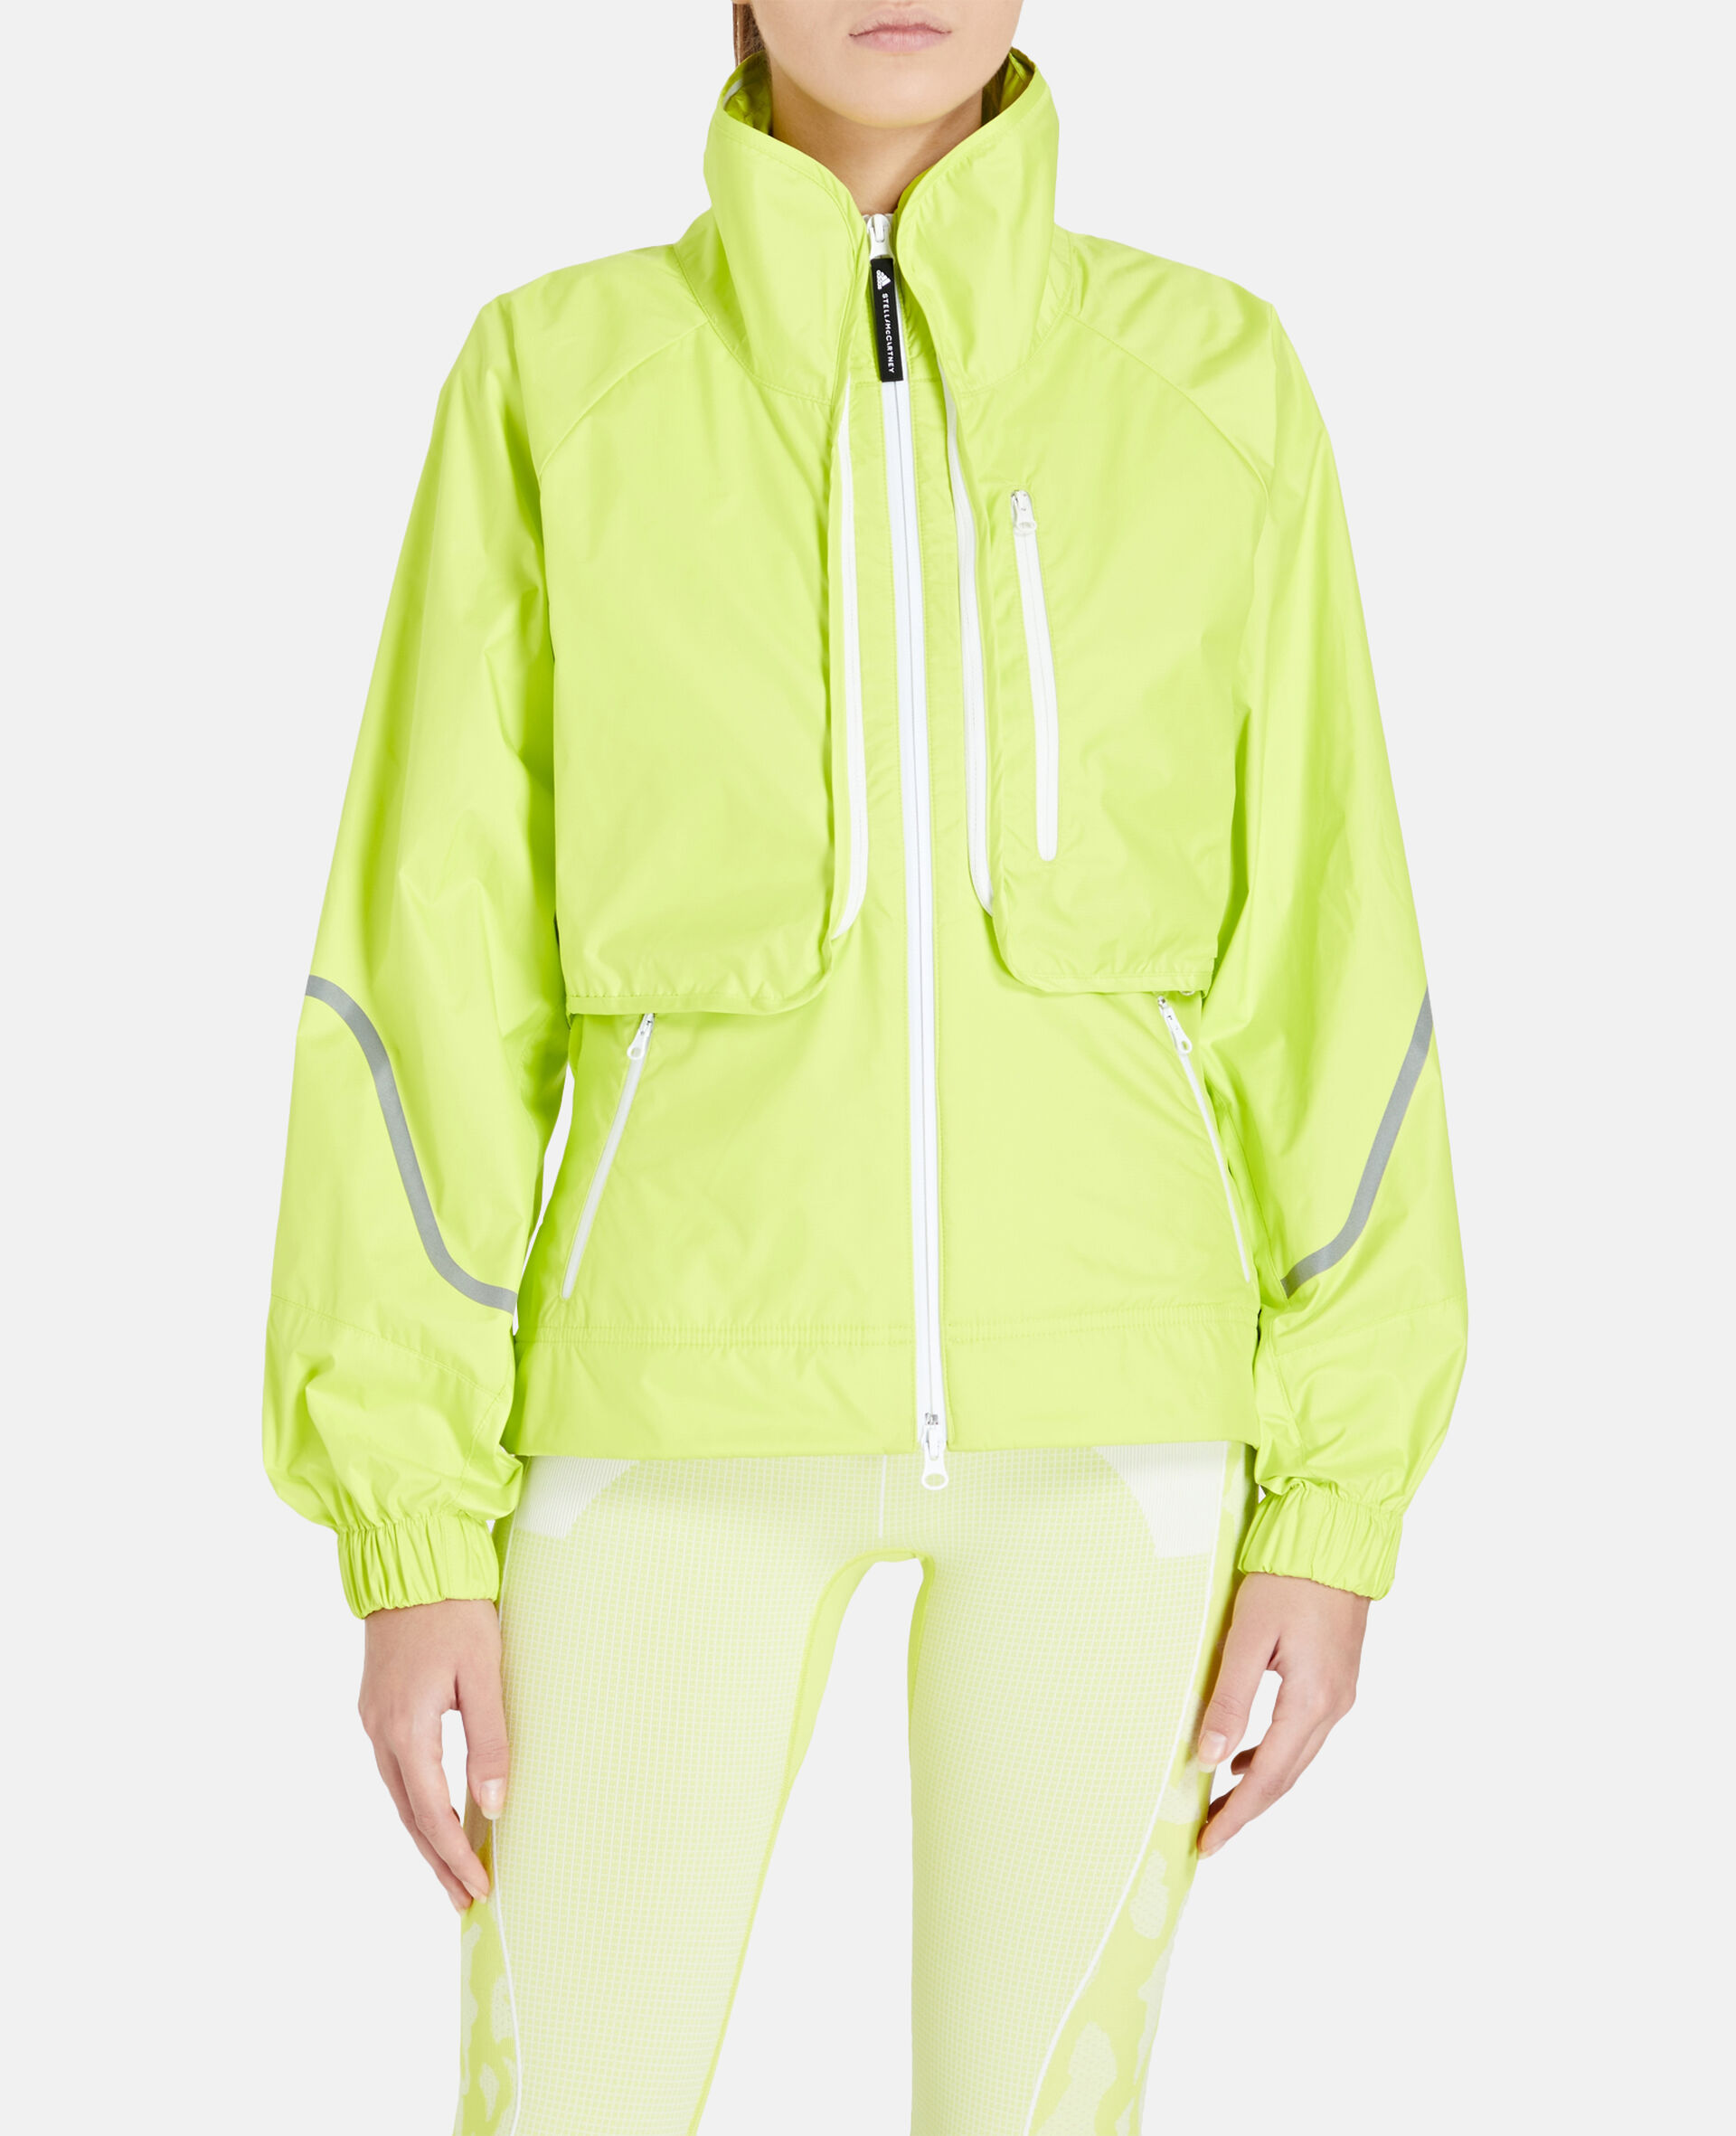 TruePace 2-in-1 Running Jacket-Yellow-large image number 4